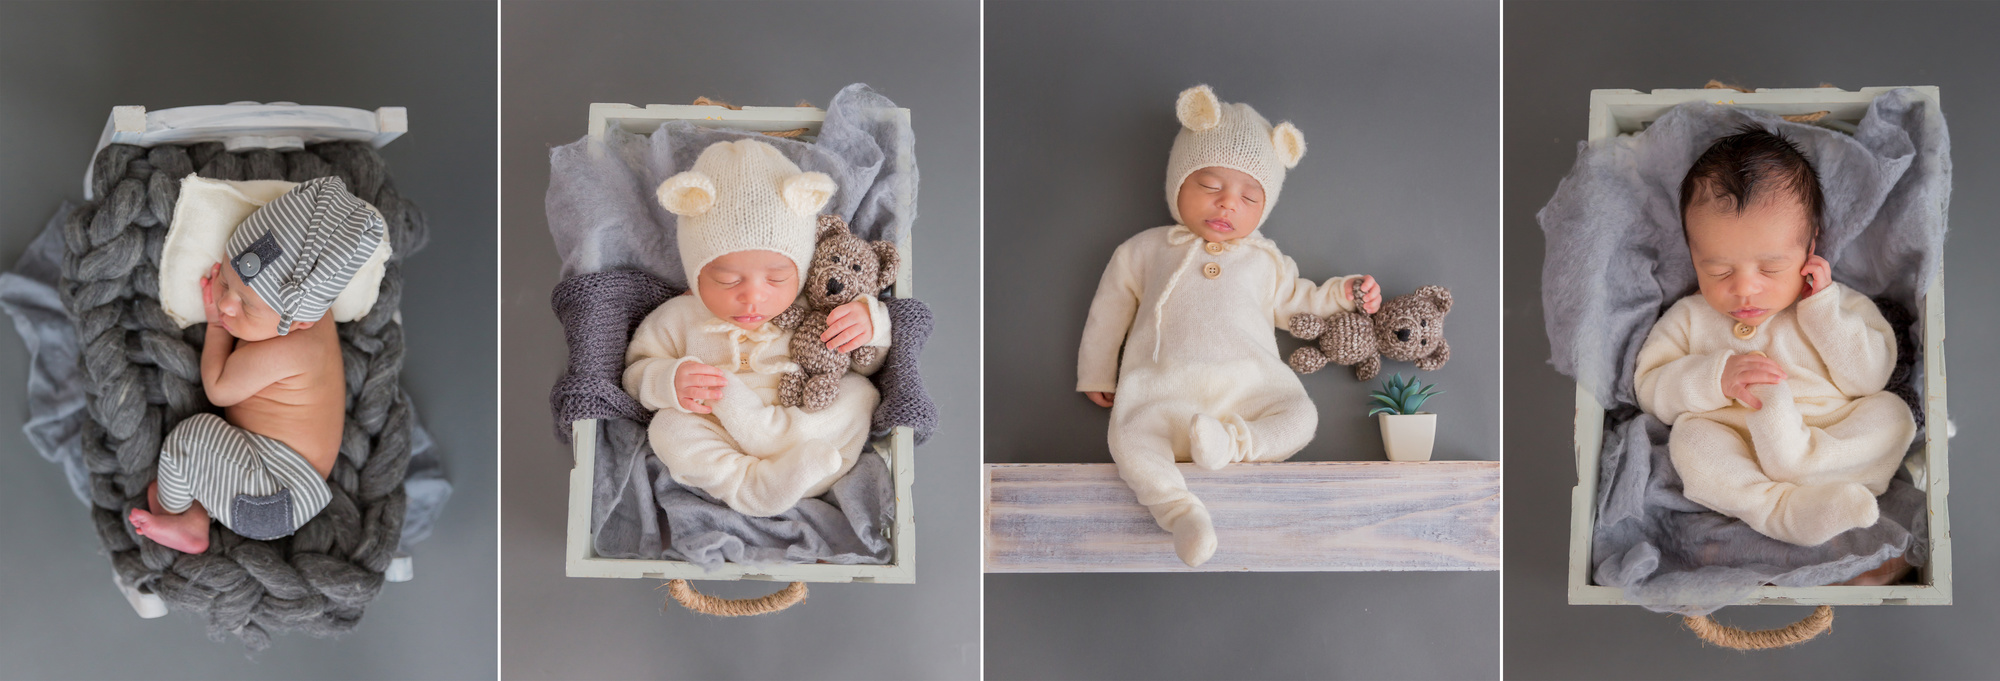 Newborn Session Investments